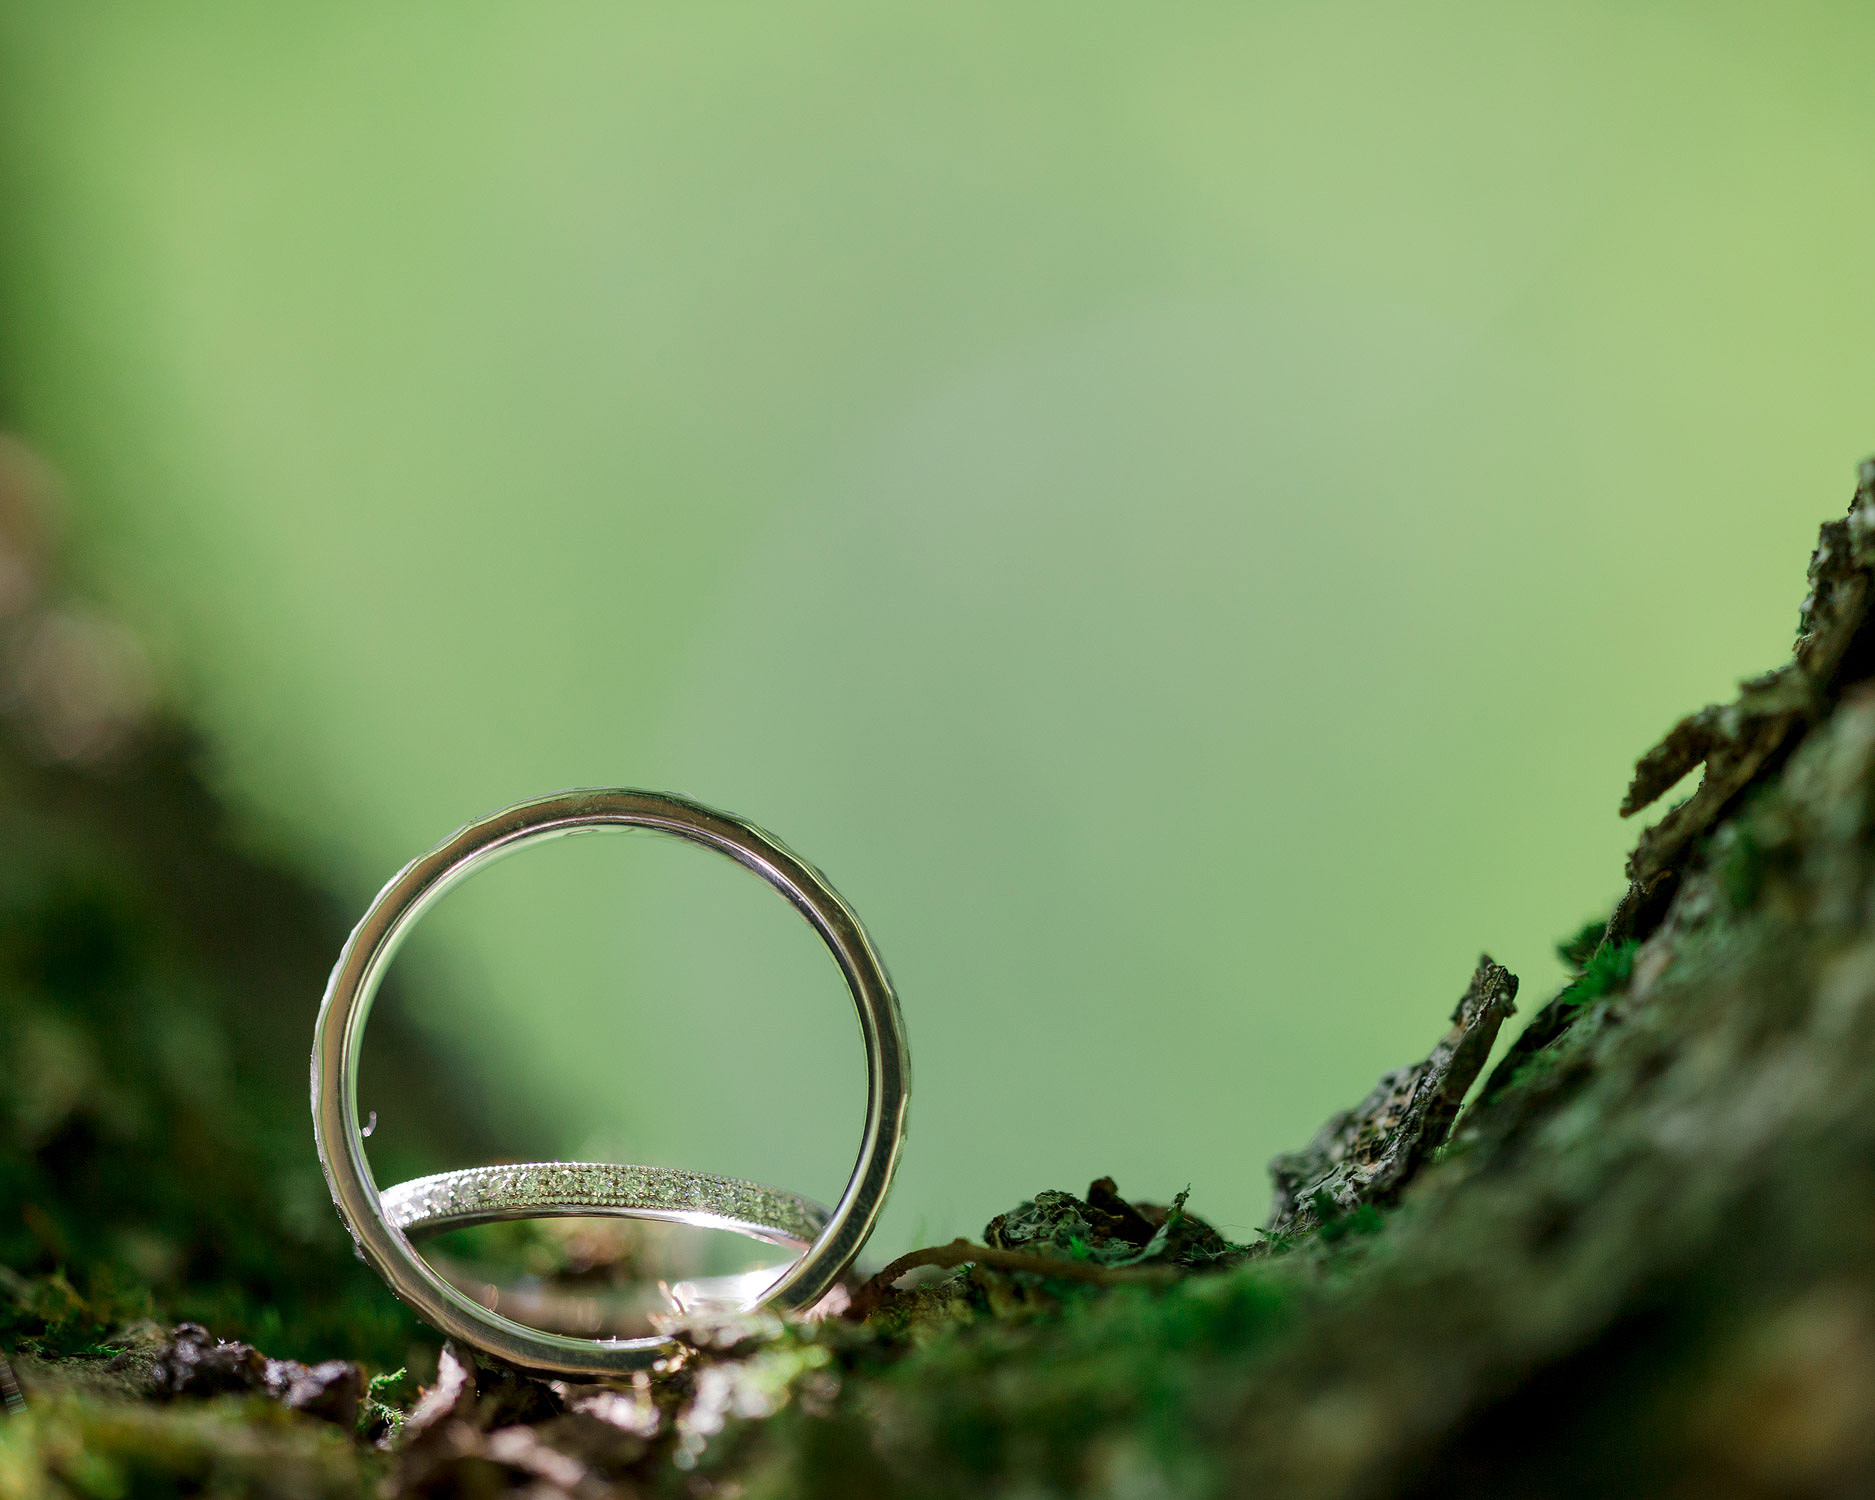 Closeup of wedding rings perched in a tree